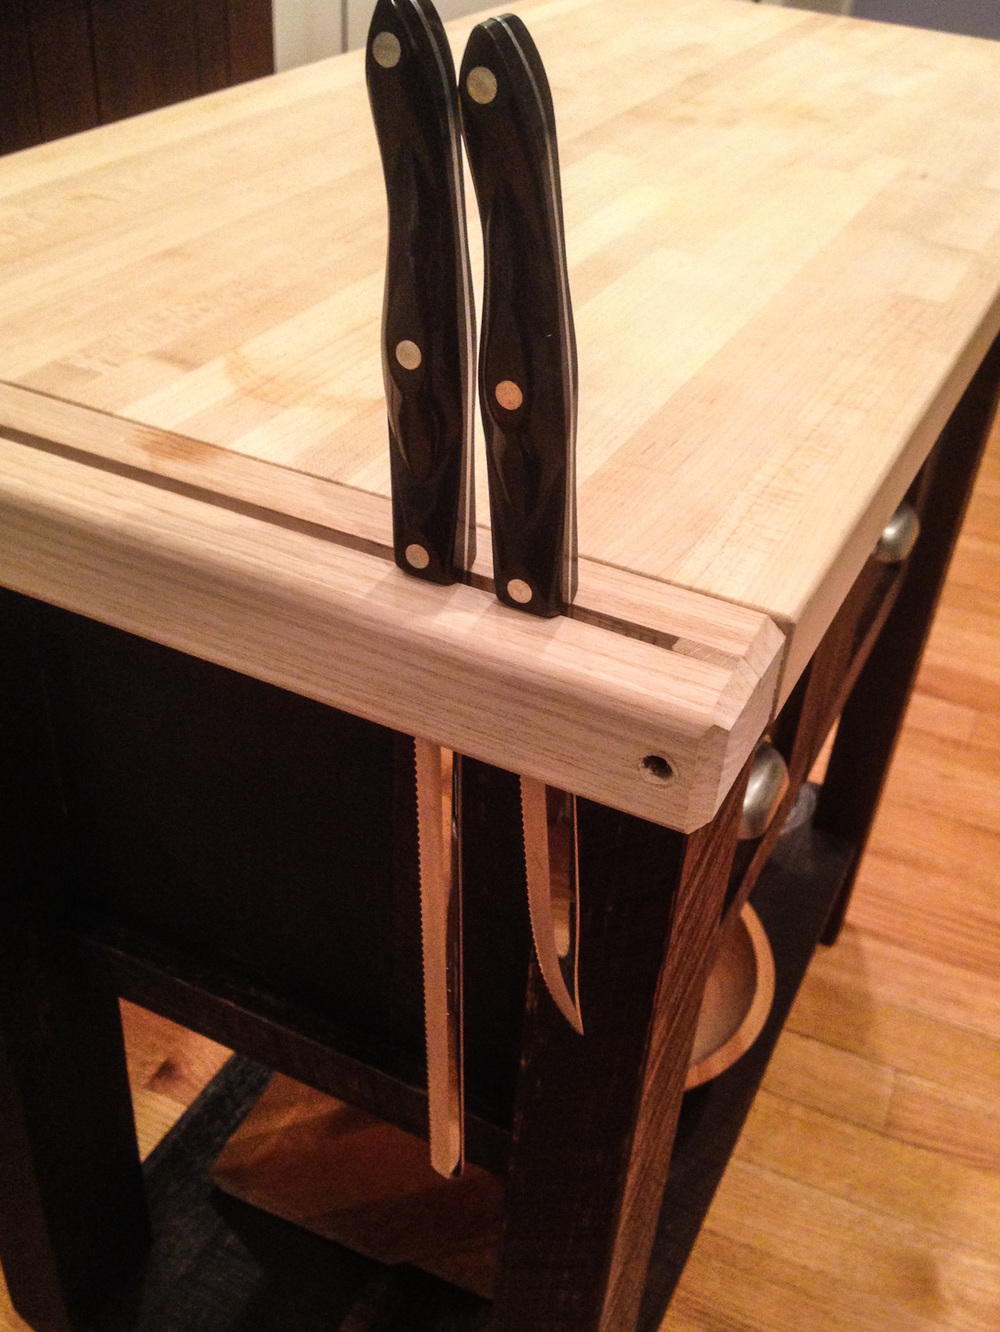 Accessory Server - Knife Block Detail